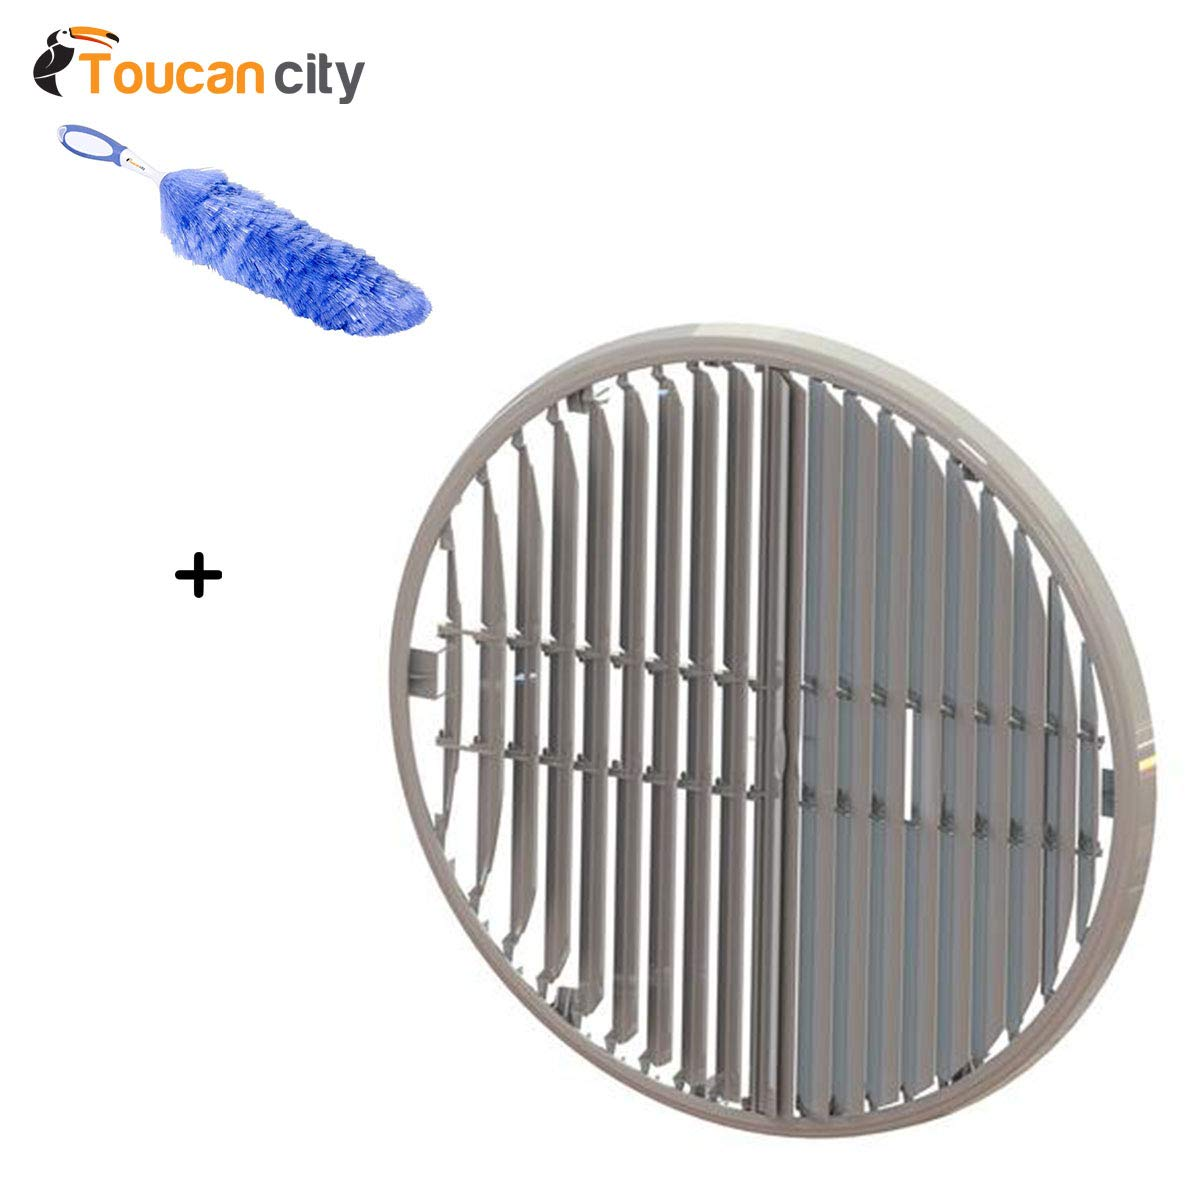 Toucan City Flexible Static Duster and Bonaire Durango Directional Louver for Bonaire Durango Window and Portable Evaporative Cooler 6281925SP Toucan City + Bonaire Durango